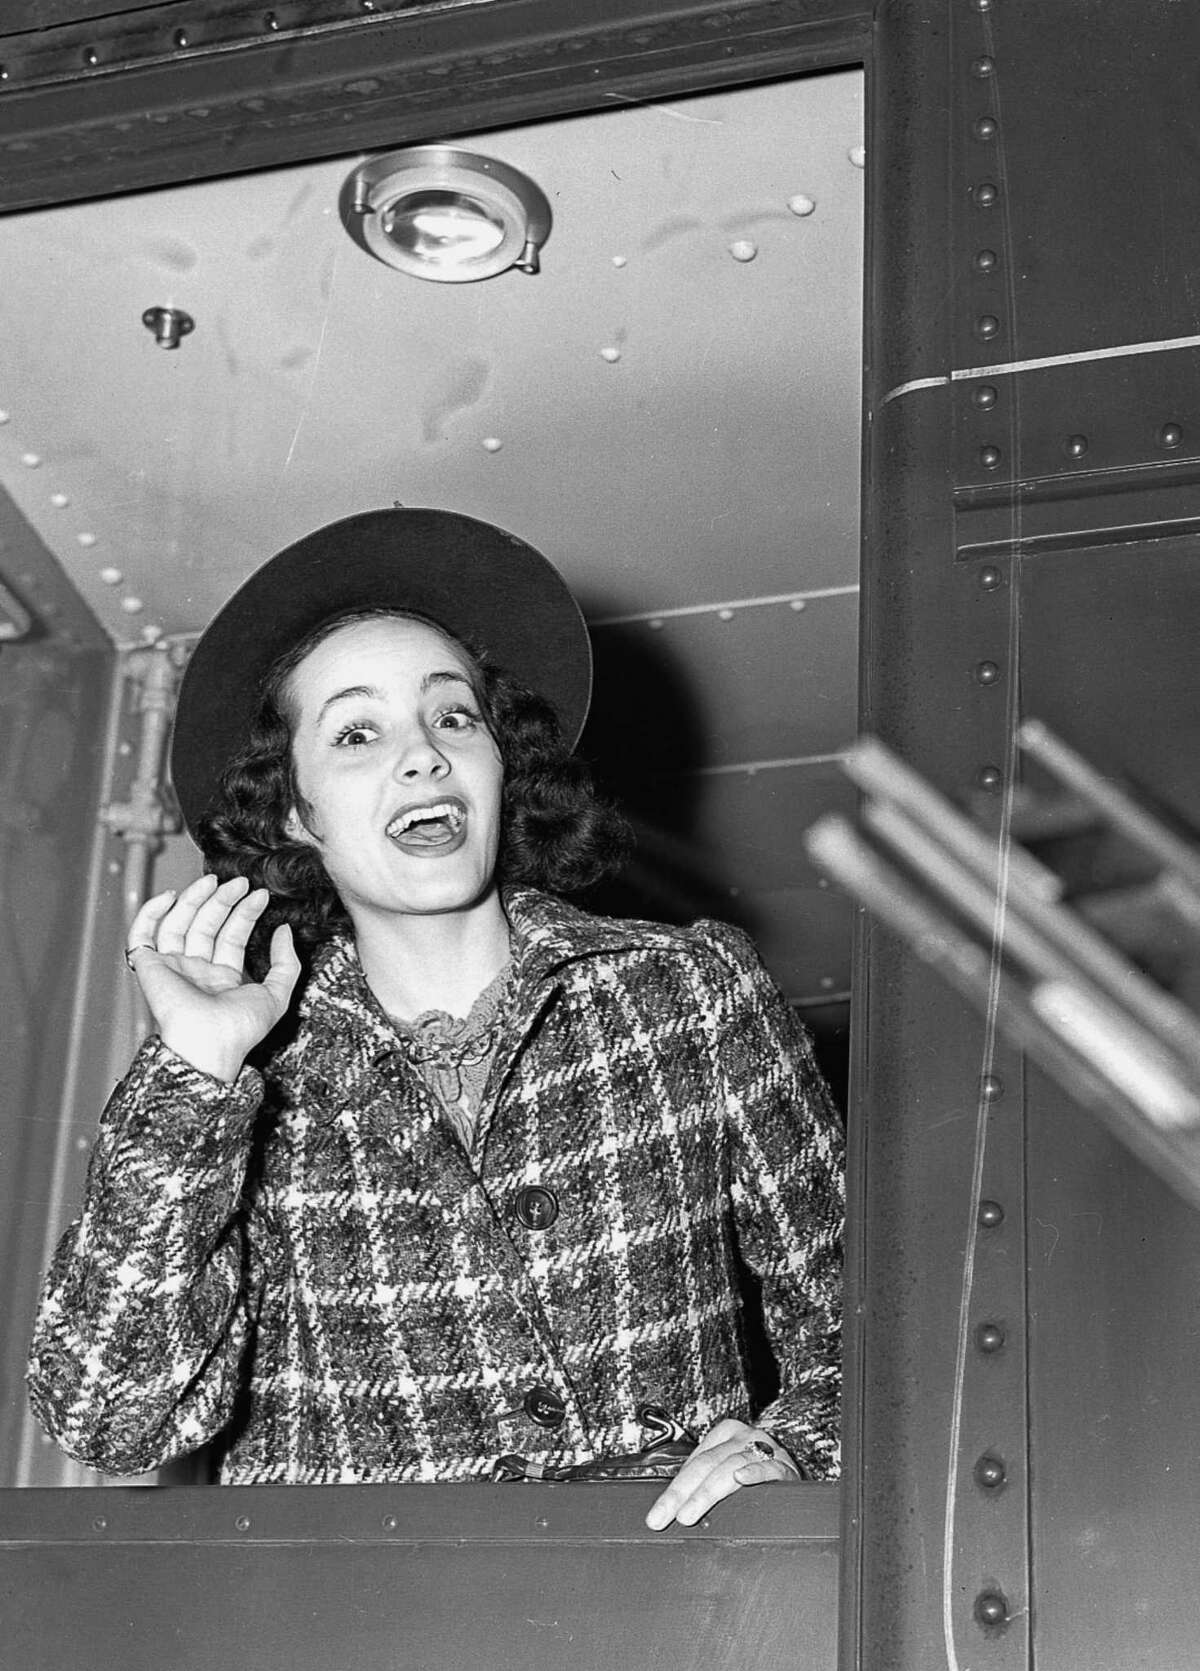 Bridgeport native Adriana Caselotti, who as a convent-educated teenager in 1934 won the role as the voice of sweet, innocent Snow White in Walt Disney's first feature-length cartoon, is shown arriving in New York on December 14, 1939.